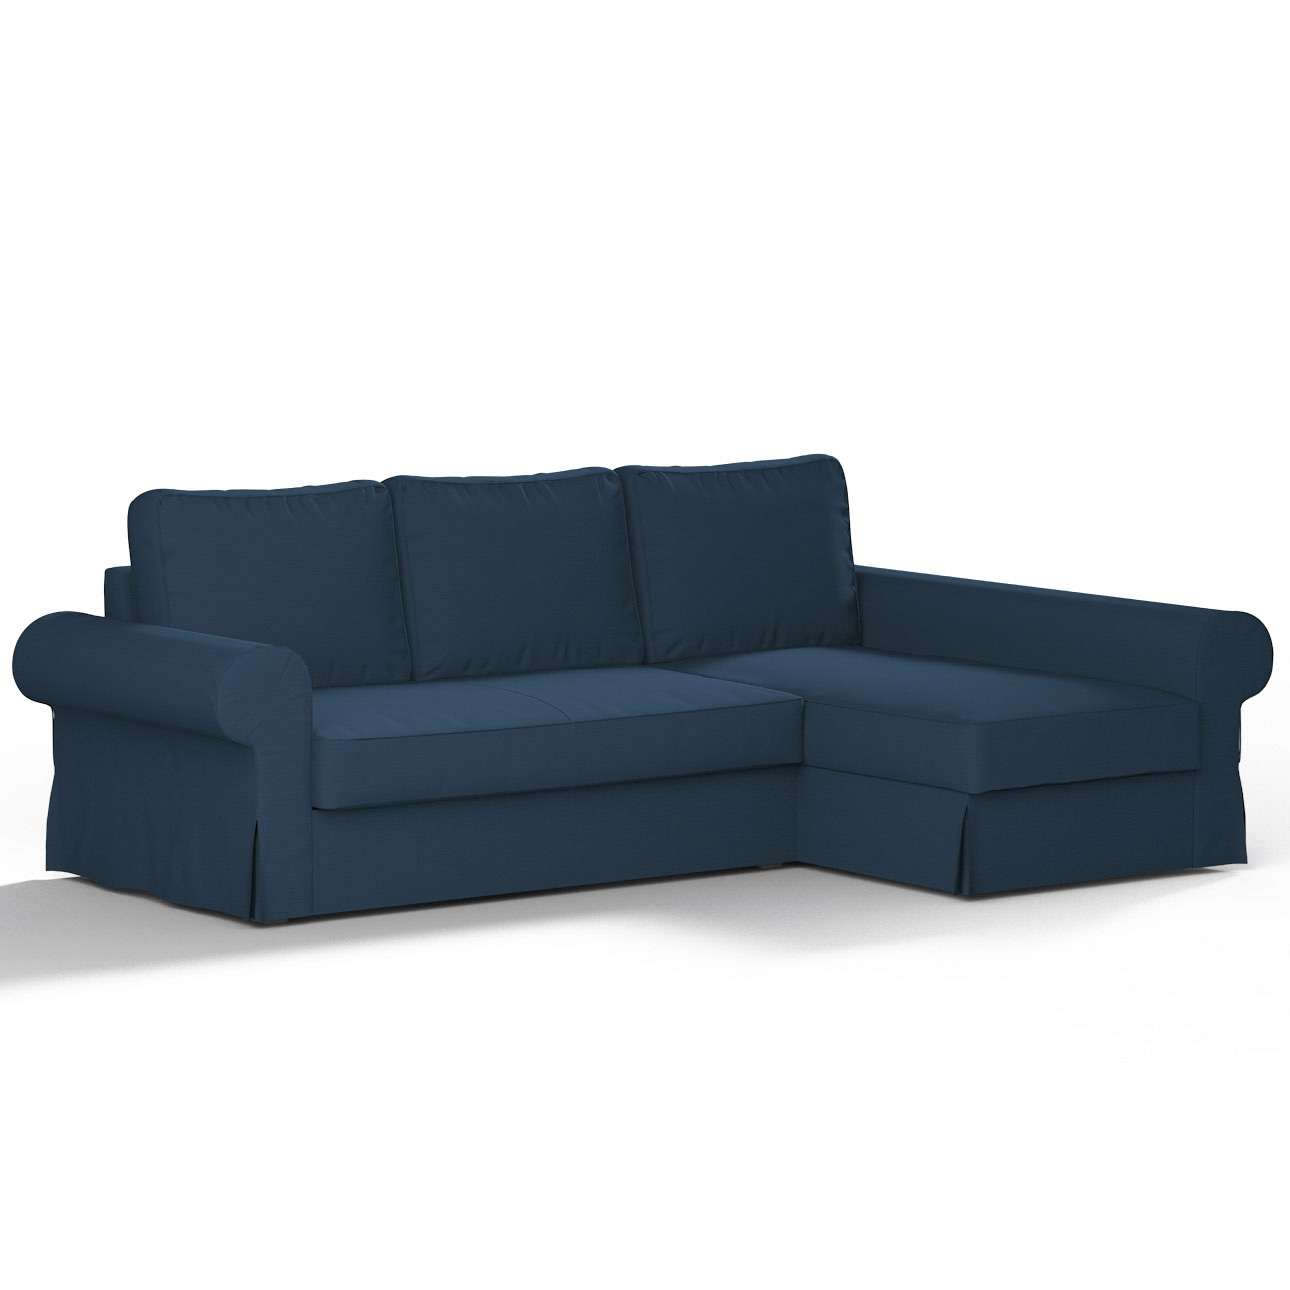 Backabro Sofa Bed With Chaise Longue Cover Dark Blue 702